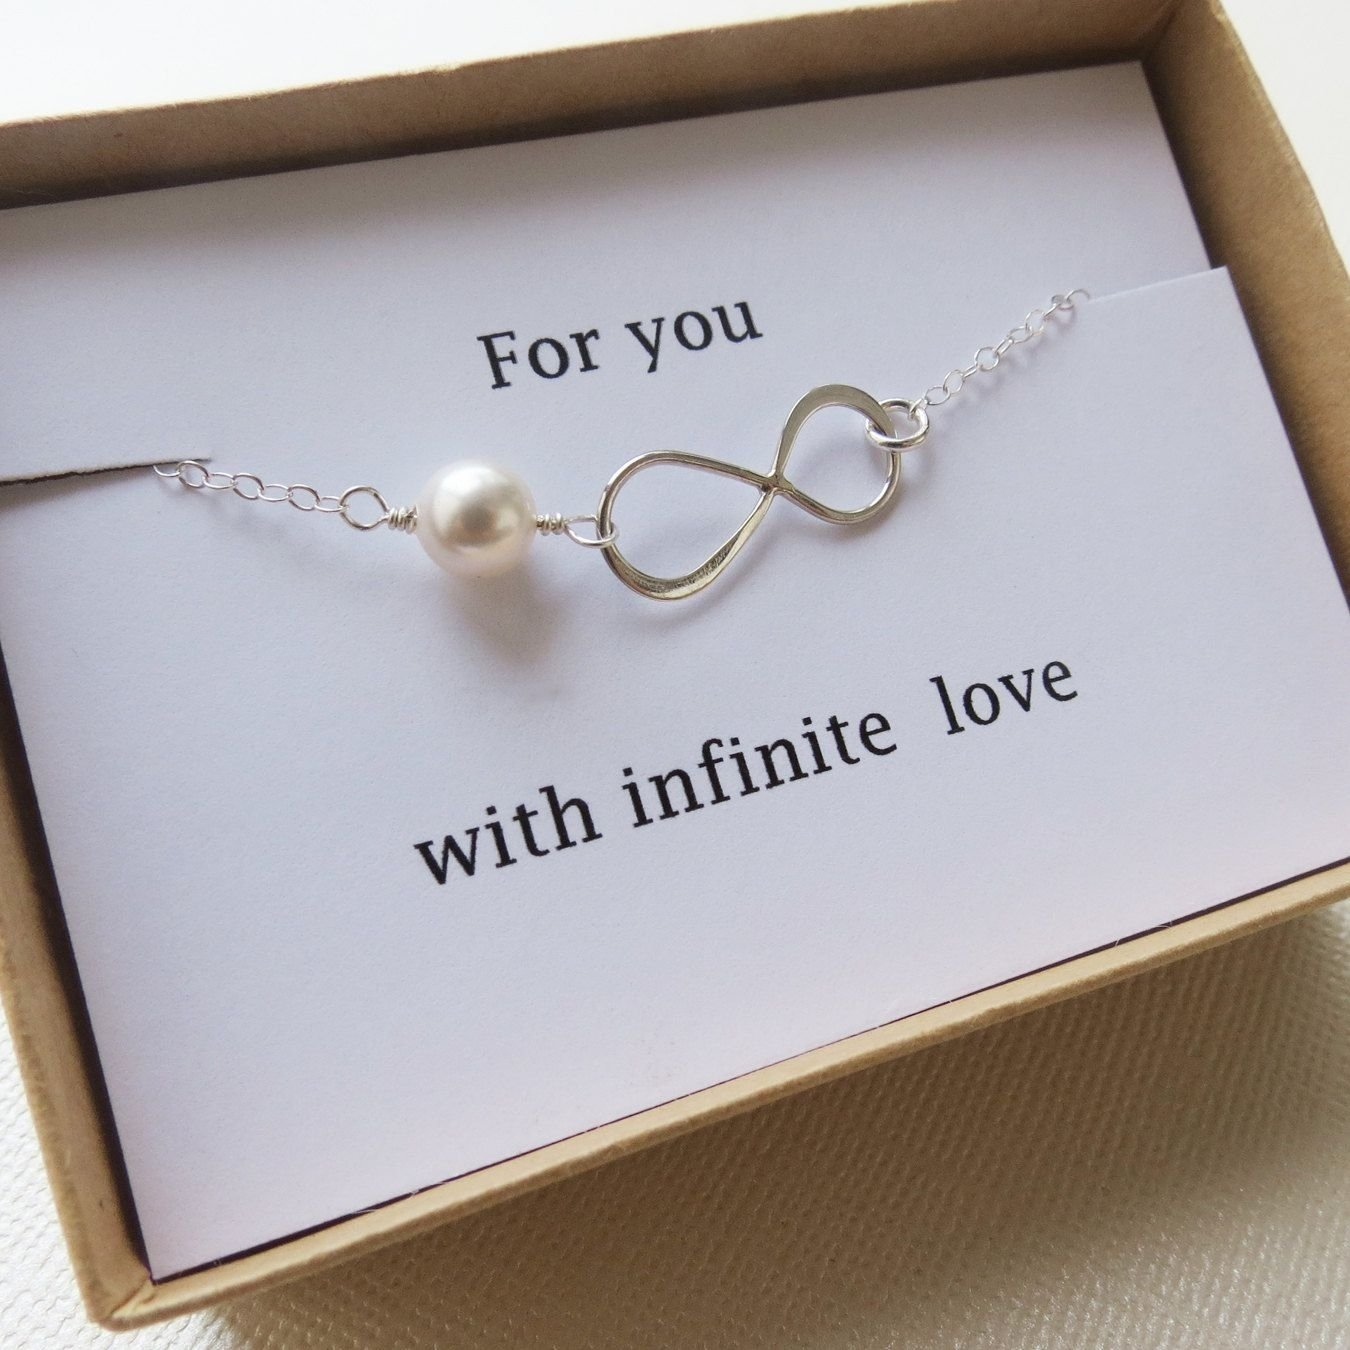 10 Lovable Christmas Gifts Ideas For Girlfriend infinity bracelet love holiday gift infinity jewelry card 8 2020